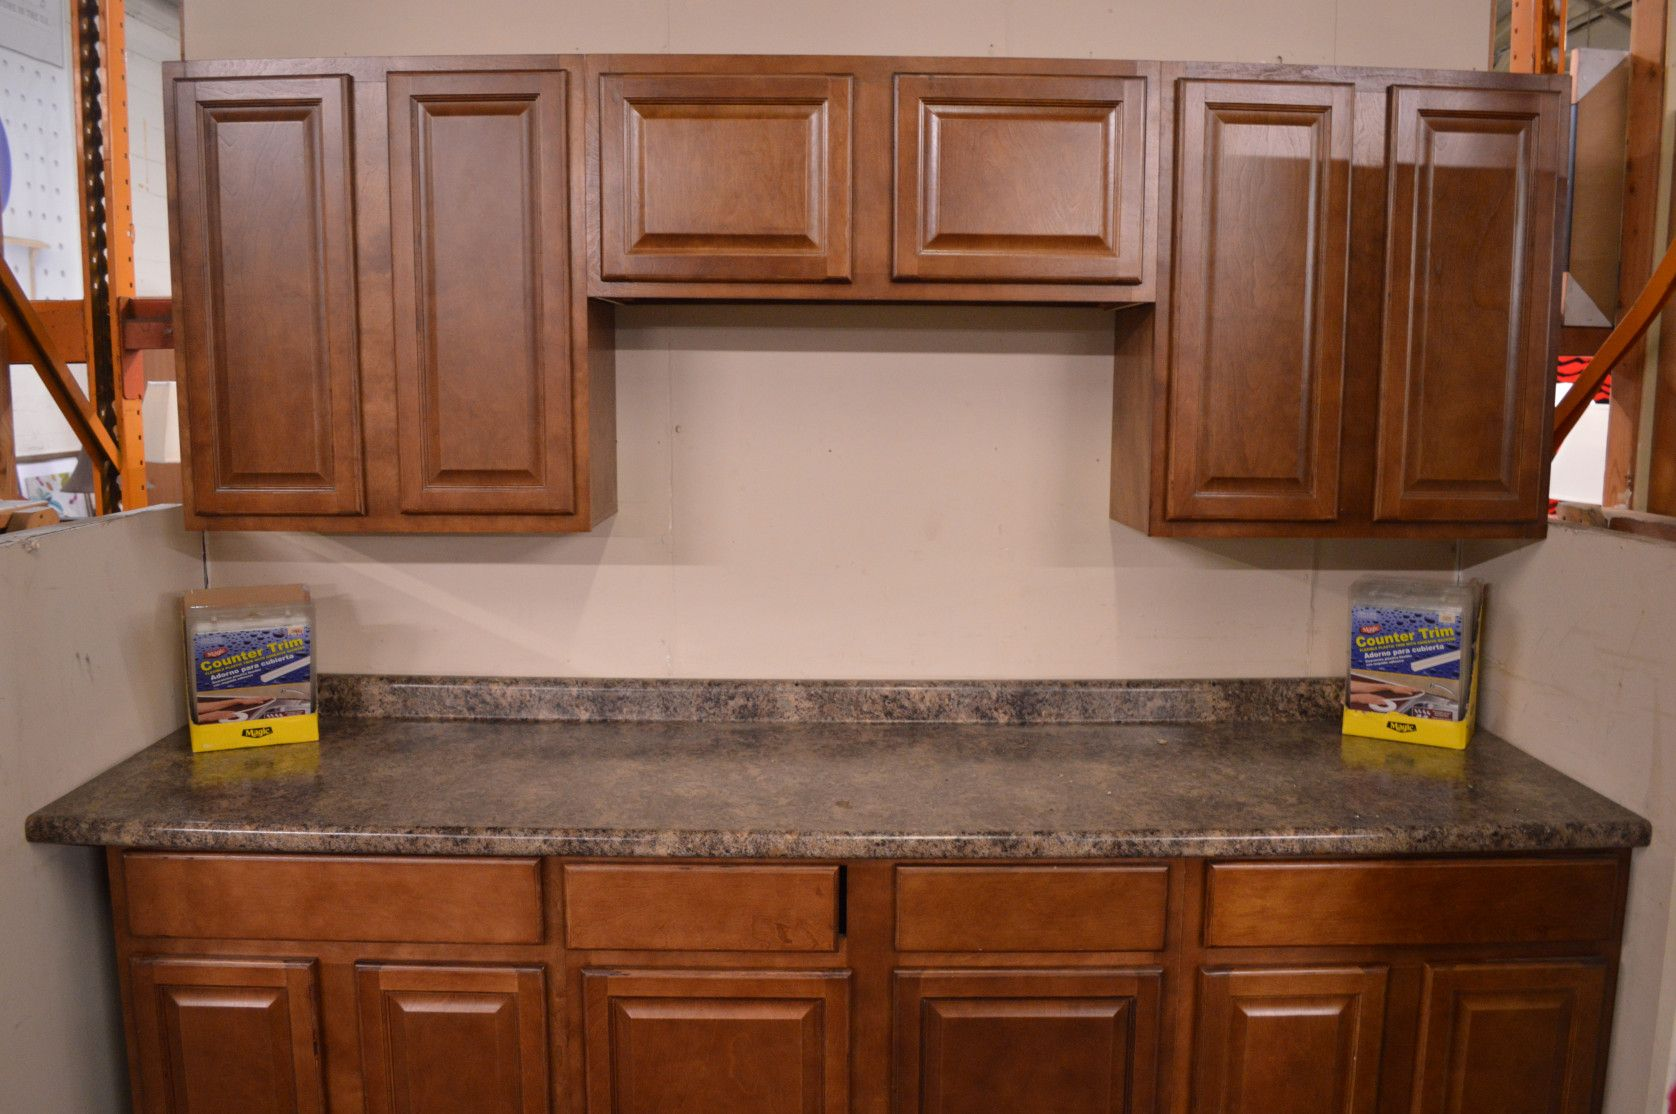 99 Kitchen Cabinets Cheap Prices Kitchen Remodeling Ideas On A Small Budget Check More At Ht Cheap Kitchen Cabinets Kitchen Cabinets Small Kitchen Cupboards